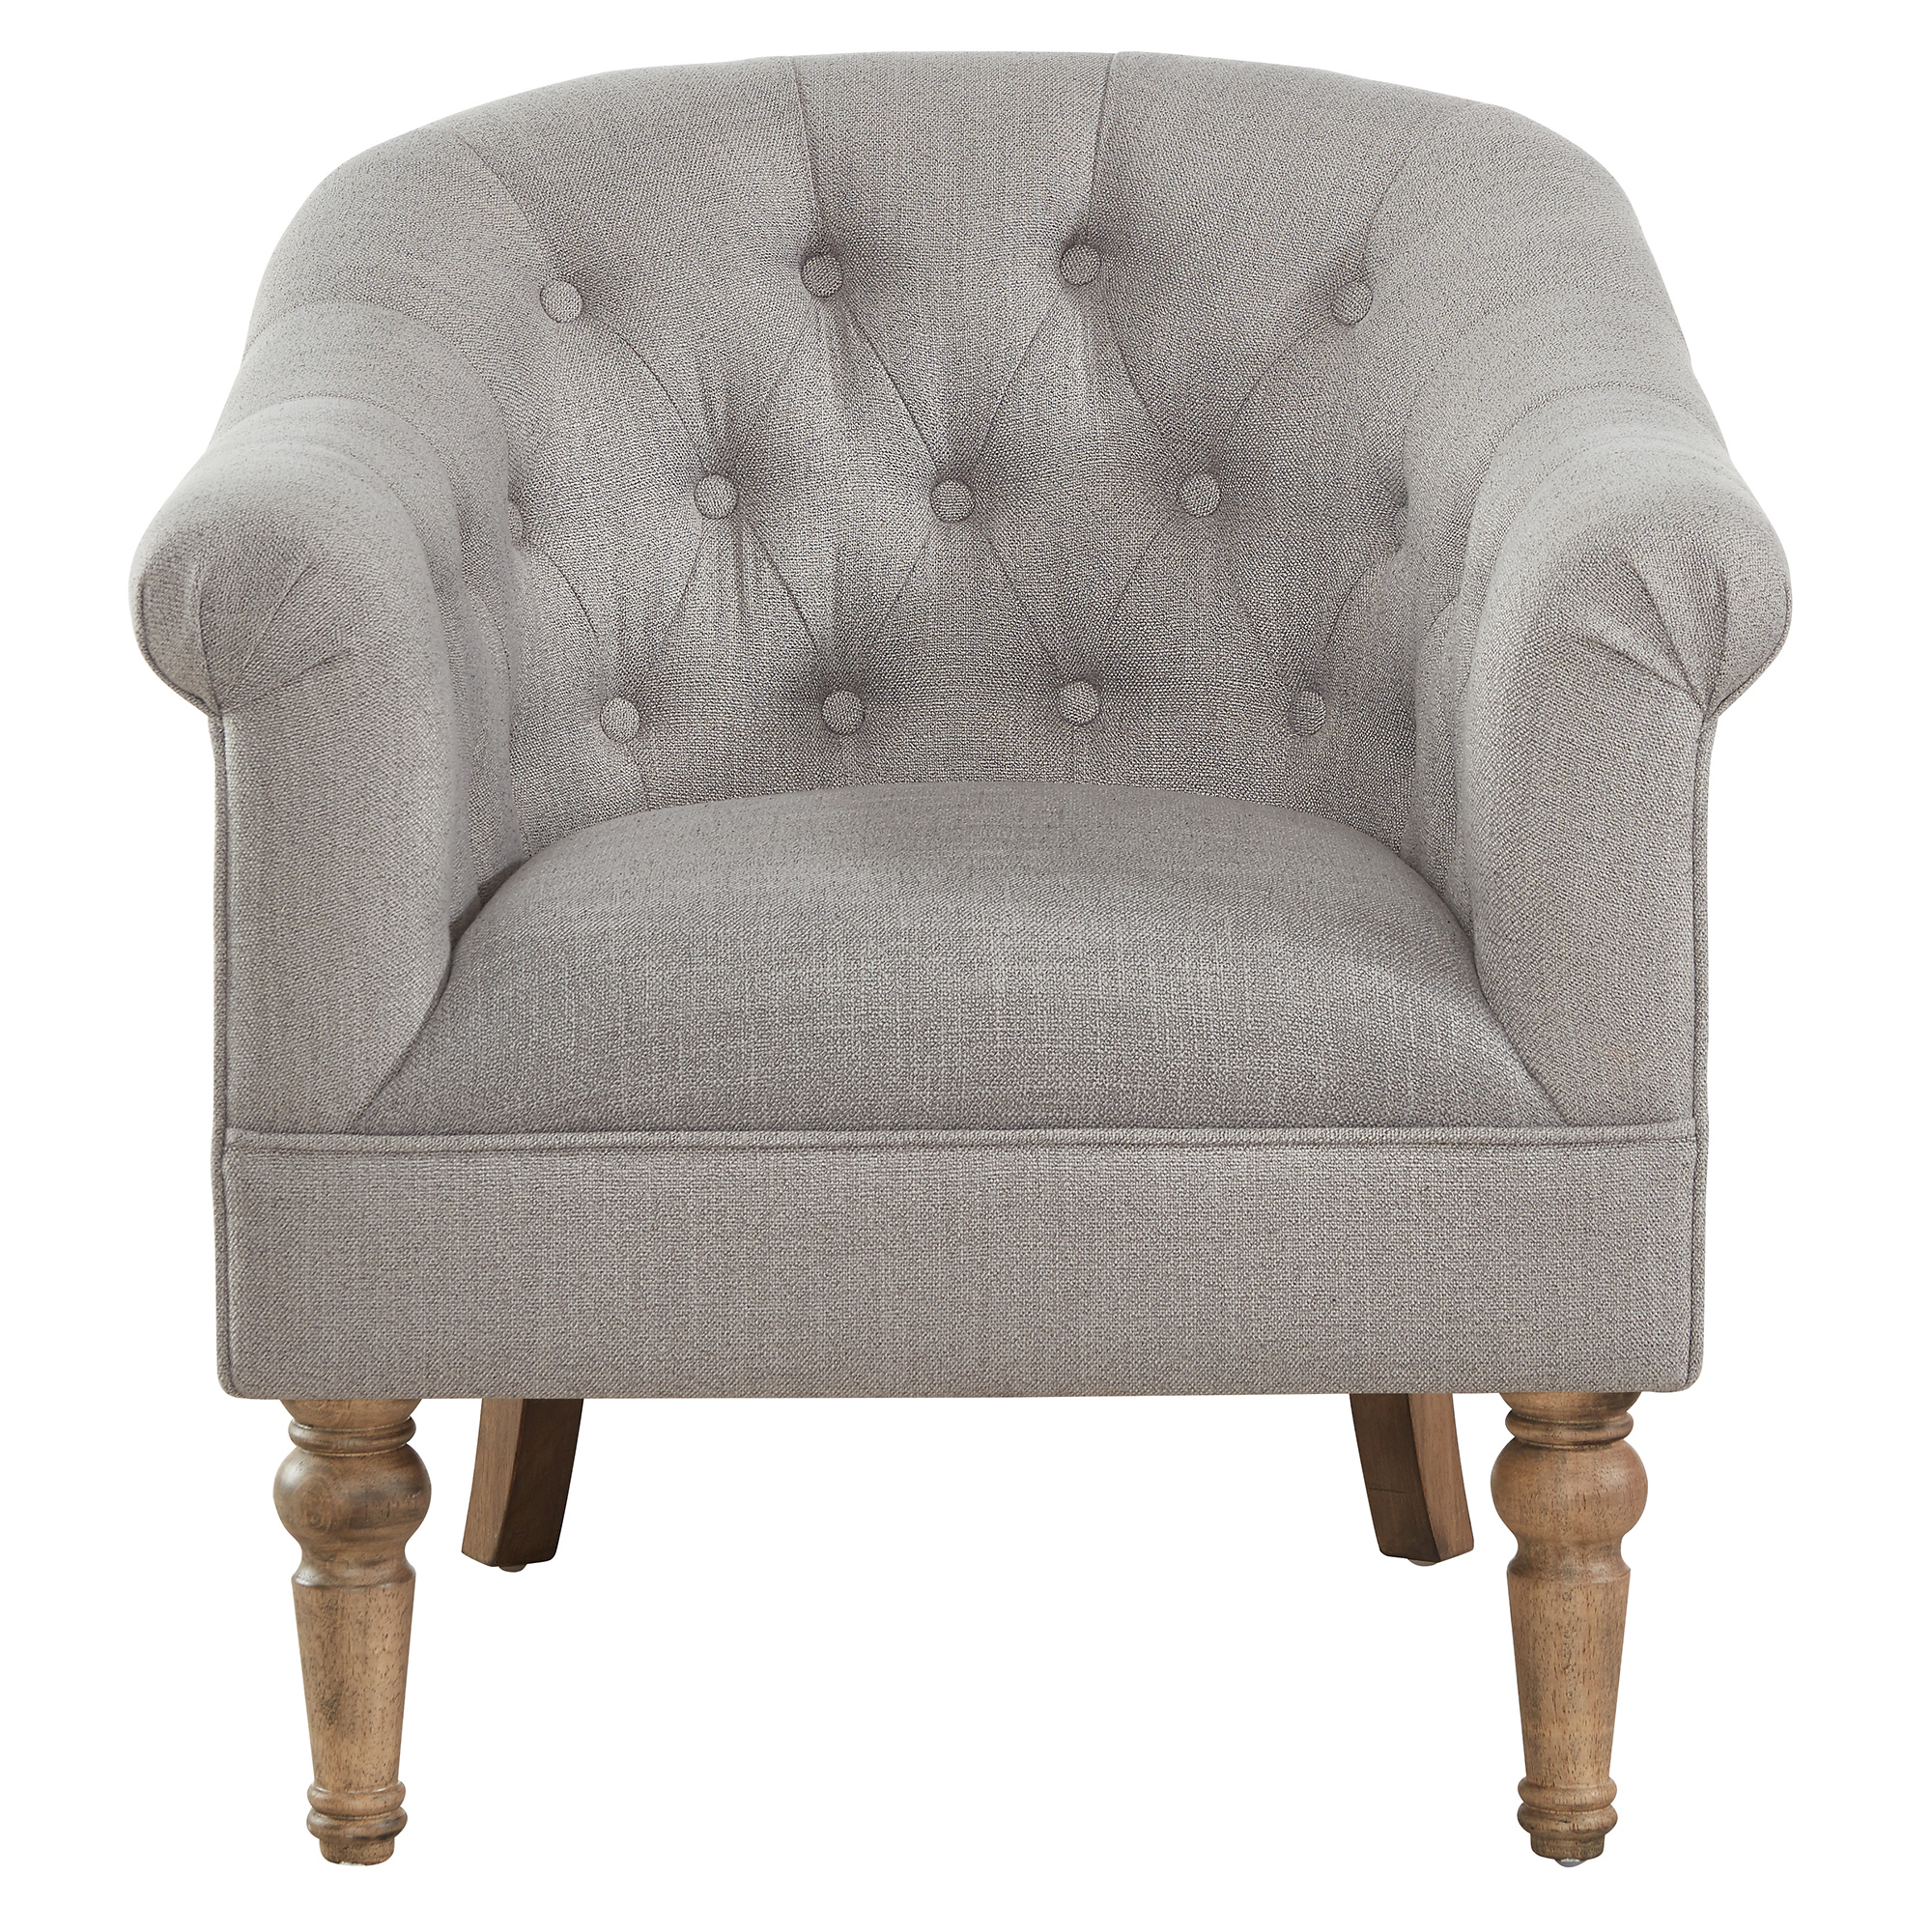 WELBECK-ACCENT CHAIR-GREY, 841173028459, Accent Chairs by Midha Furniture to Brampton, Mississauga, Etobicoke, Toronto, Scraborough, Caledon, Oakville, Markham, Ajax, Pickering, Oshawa, Richmondhill, Kitchener, Hamilton and GTA area